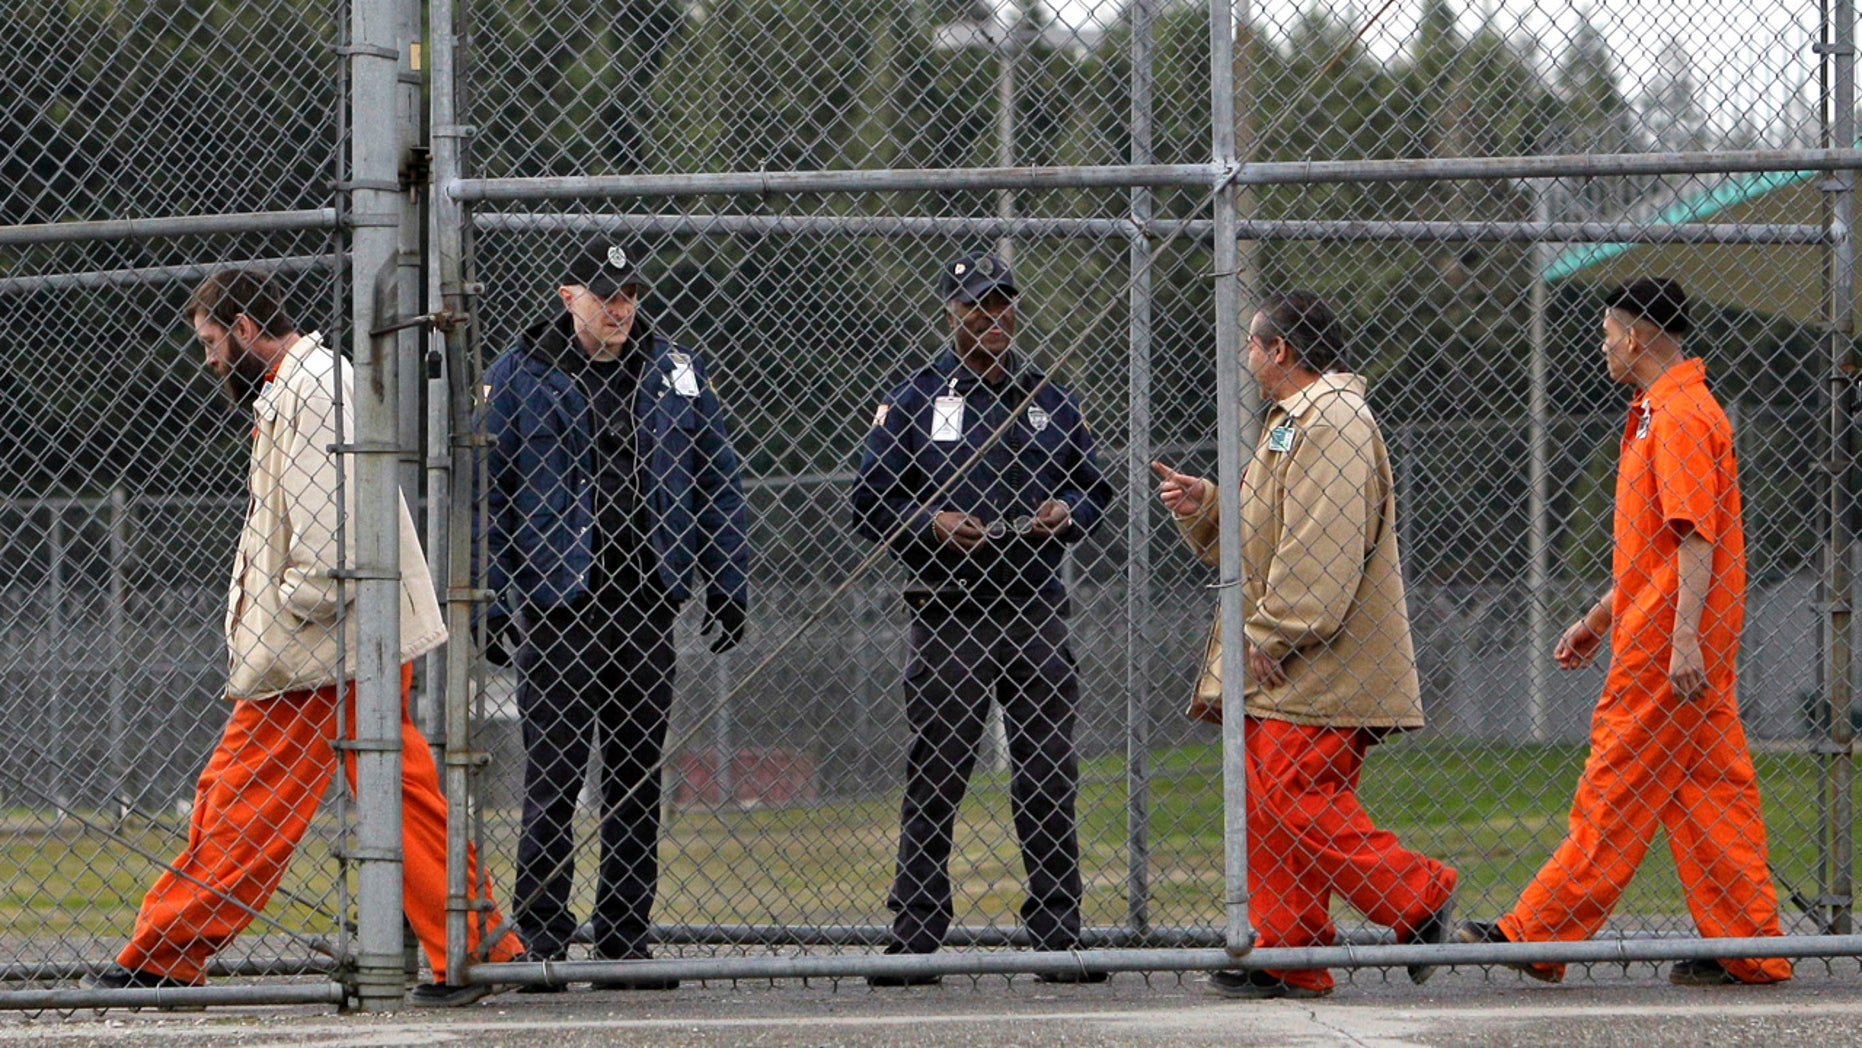 FILE - In this Feb. 17, 2011 file photo, inmates walk past correctional officers at the Washington Corrections Center in Shelton, Wash. Gov. Jay Inslee said Tuesday, Dec. 22, 2015 that more than 3,000 prisoners in Washington have been mistakenly released early since 2002 because of an error by the state's Department of Corrections. (AP Photo/Elaine Thompson, file)